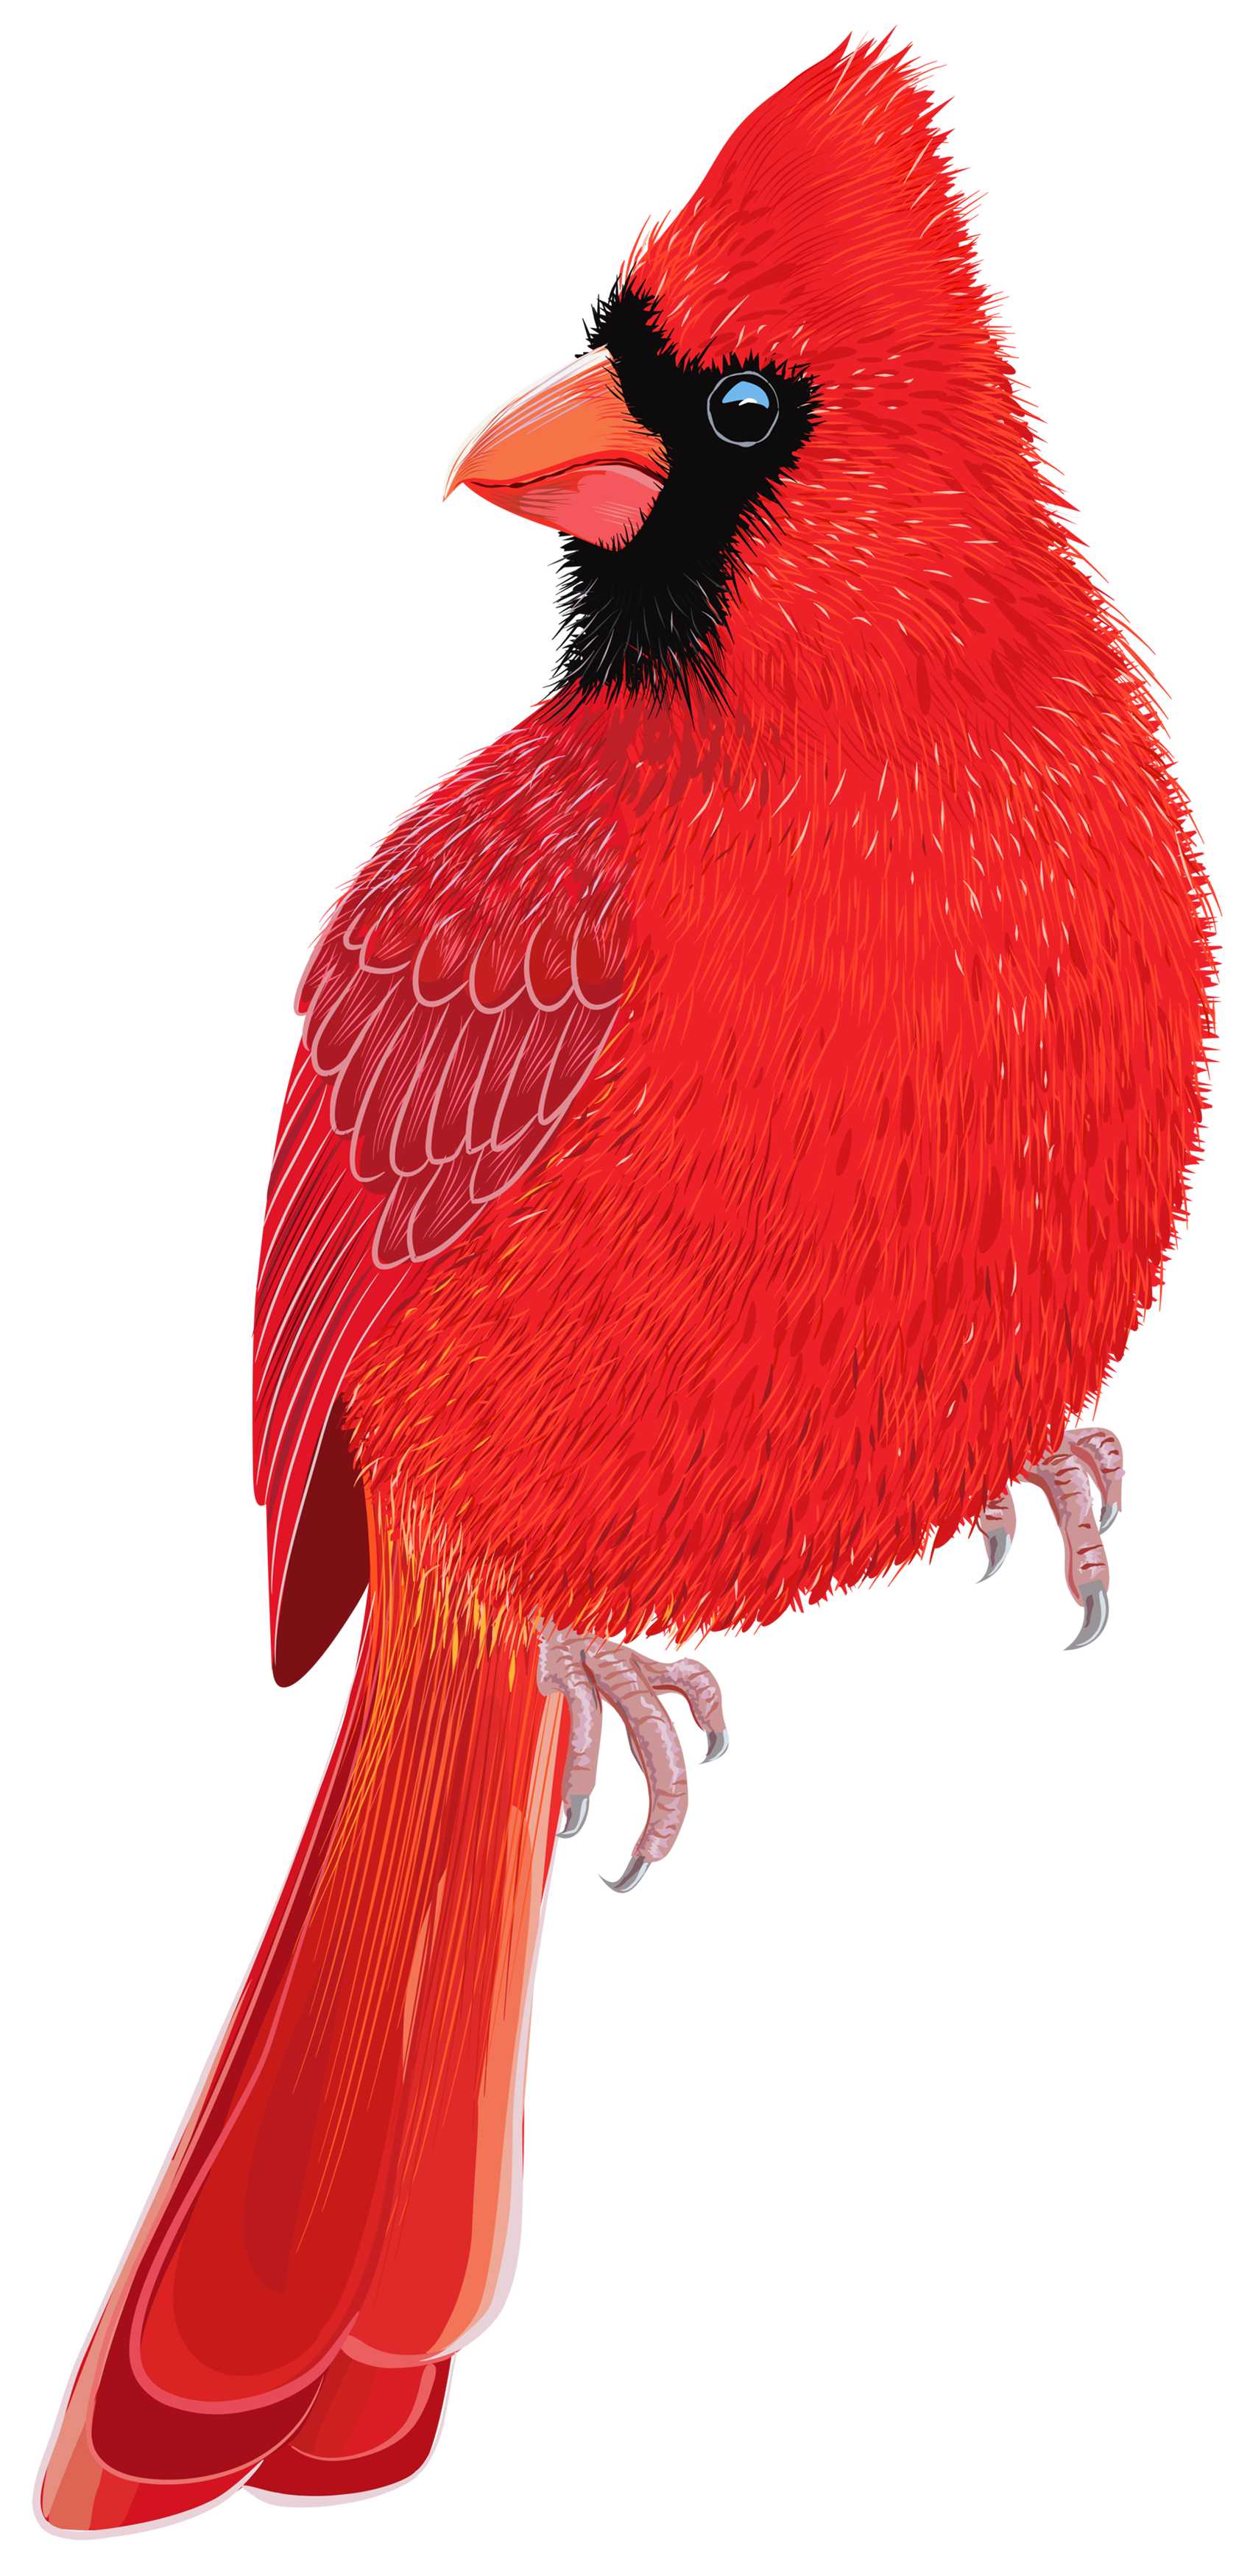 Png image best web. Cardinal clipart red bird